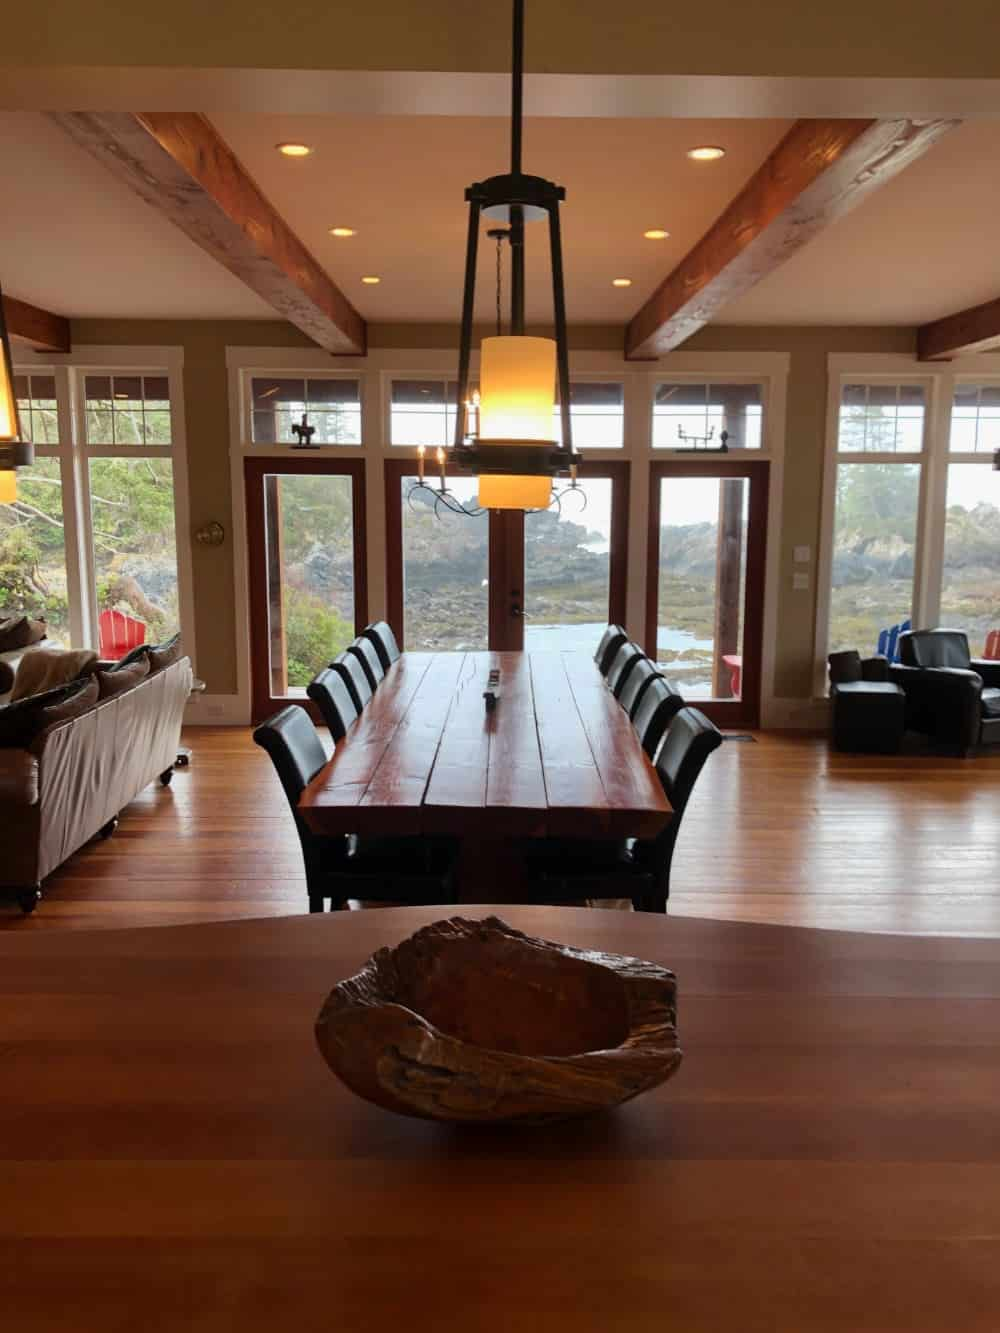 Here's a great photo of the huge dining room table from behind the kitchen island.